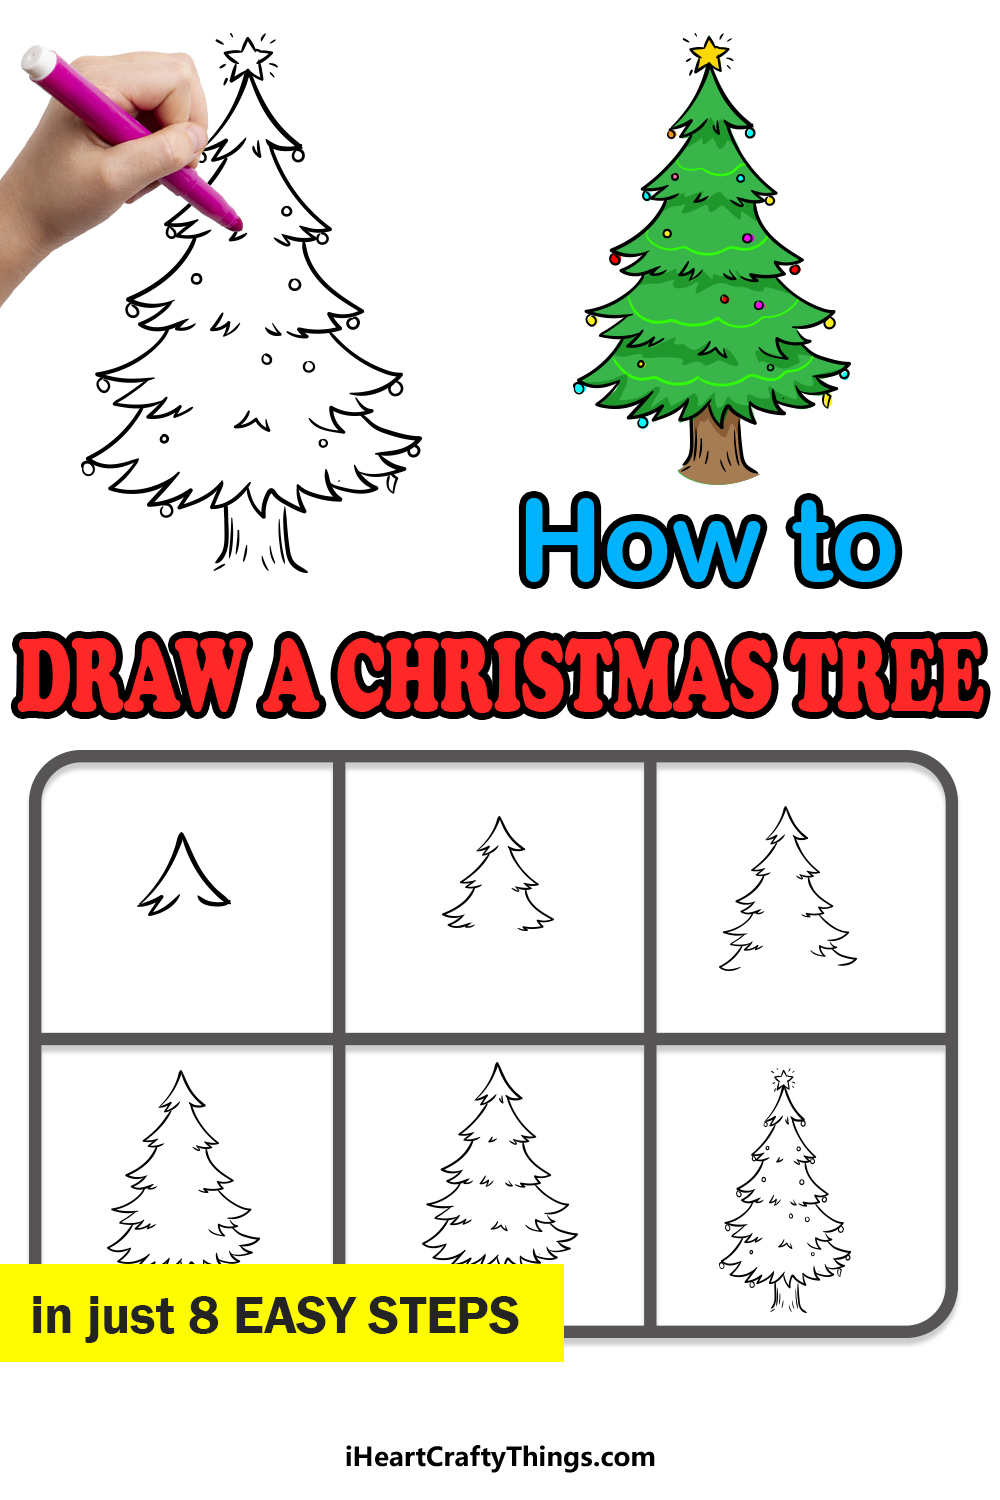 how to draw a christmas tree in 8 easy steps